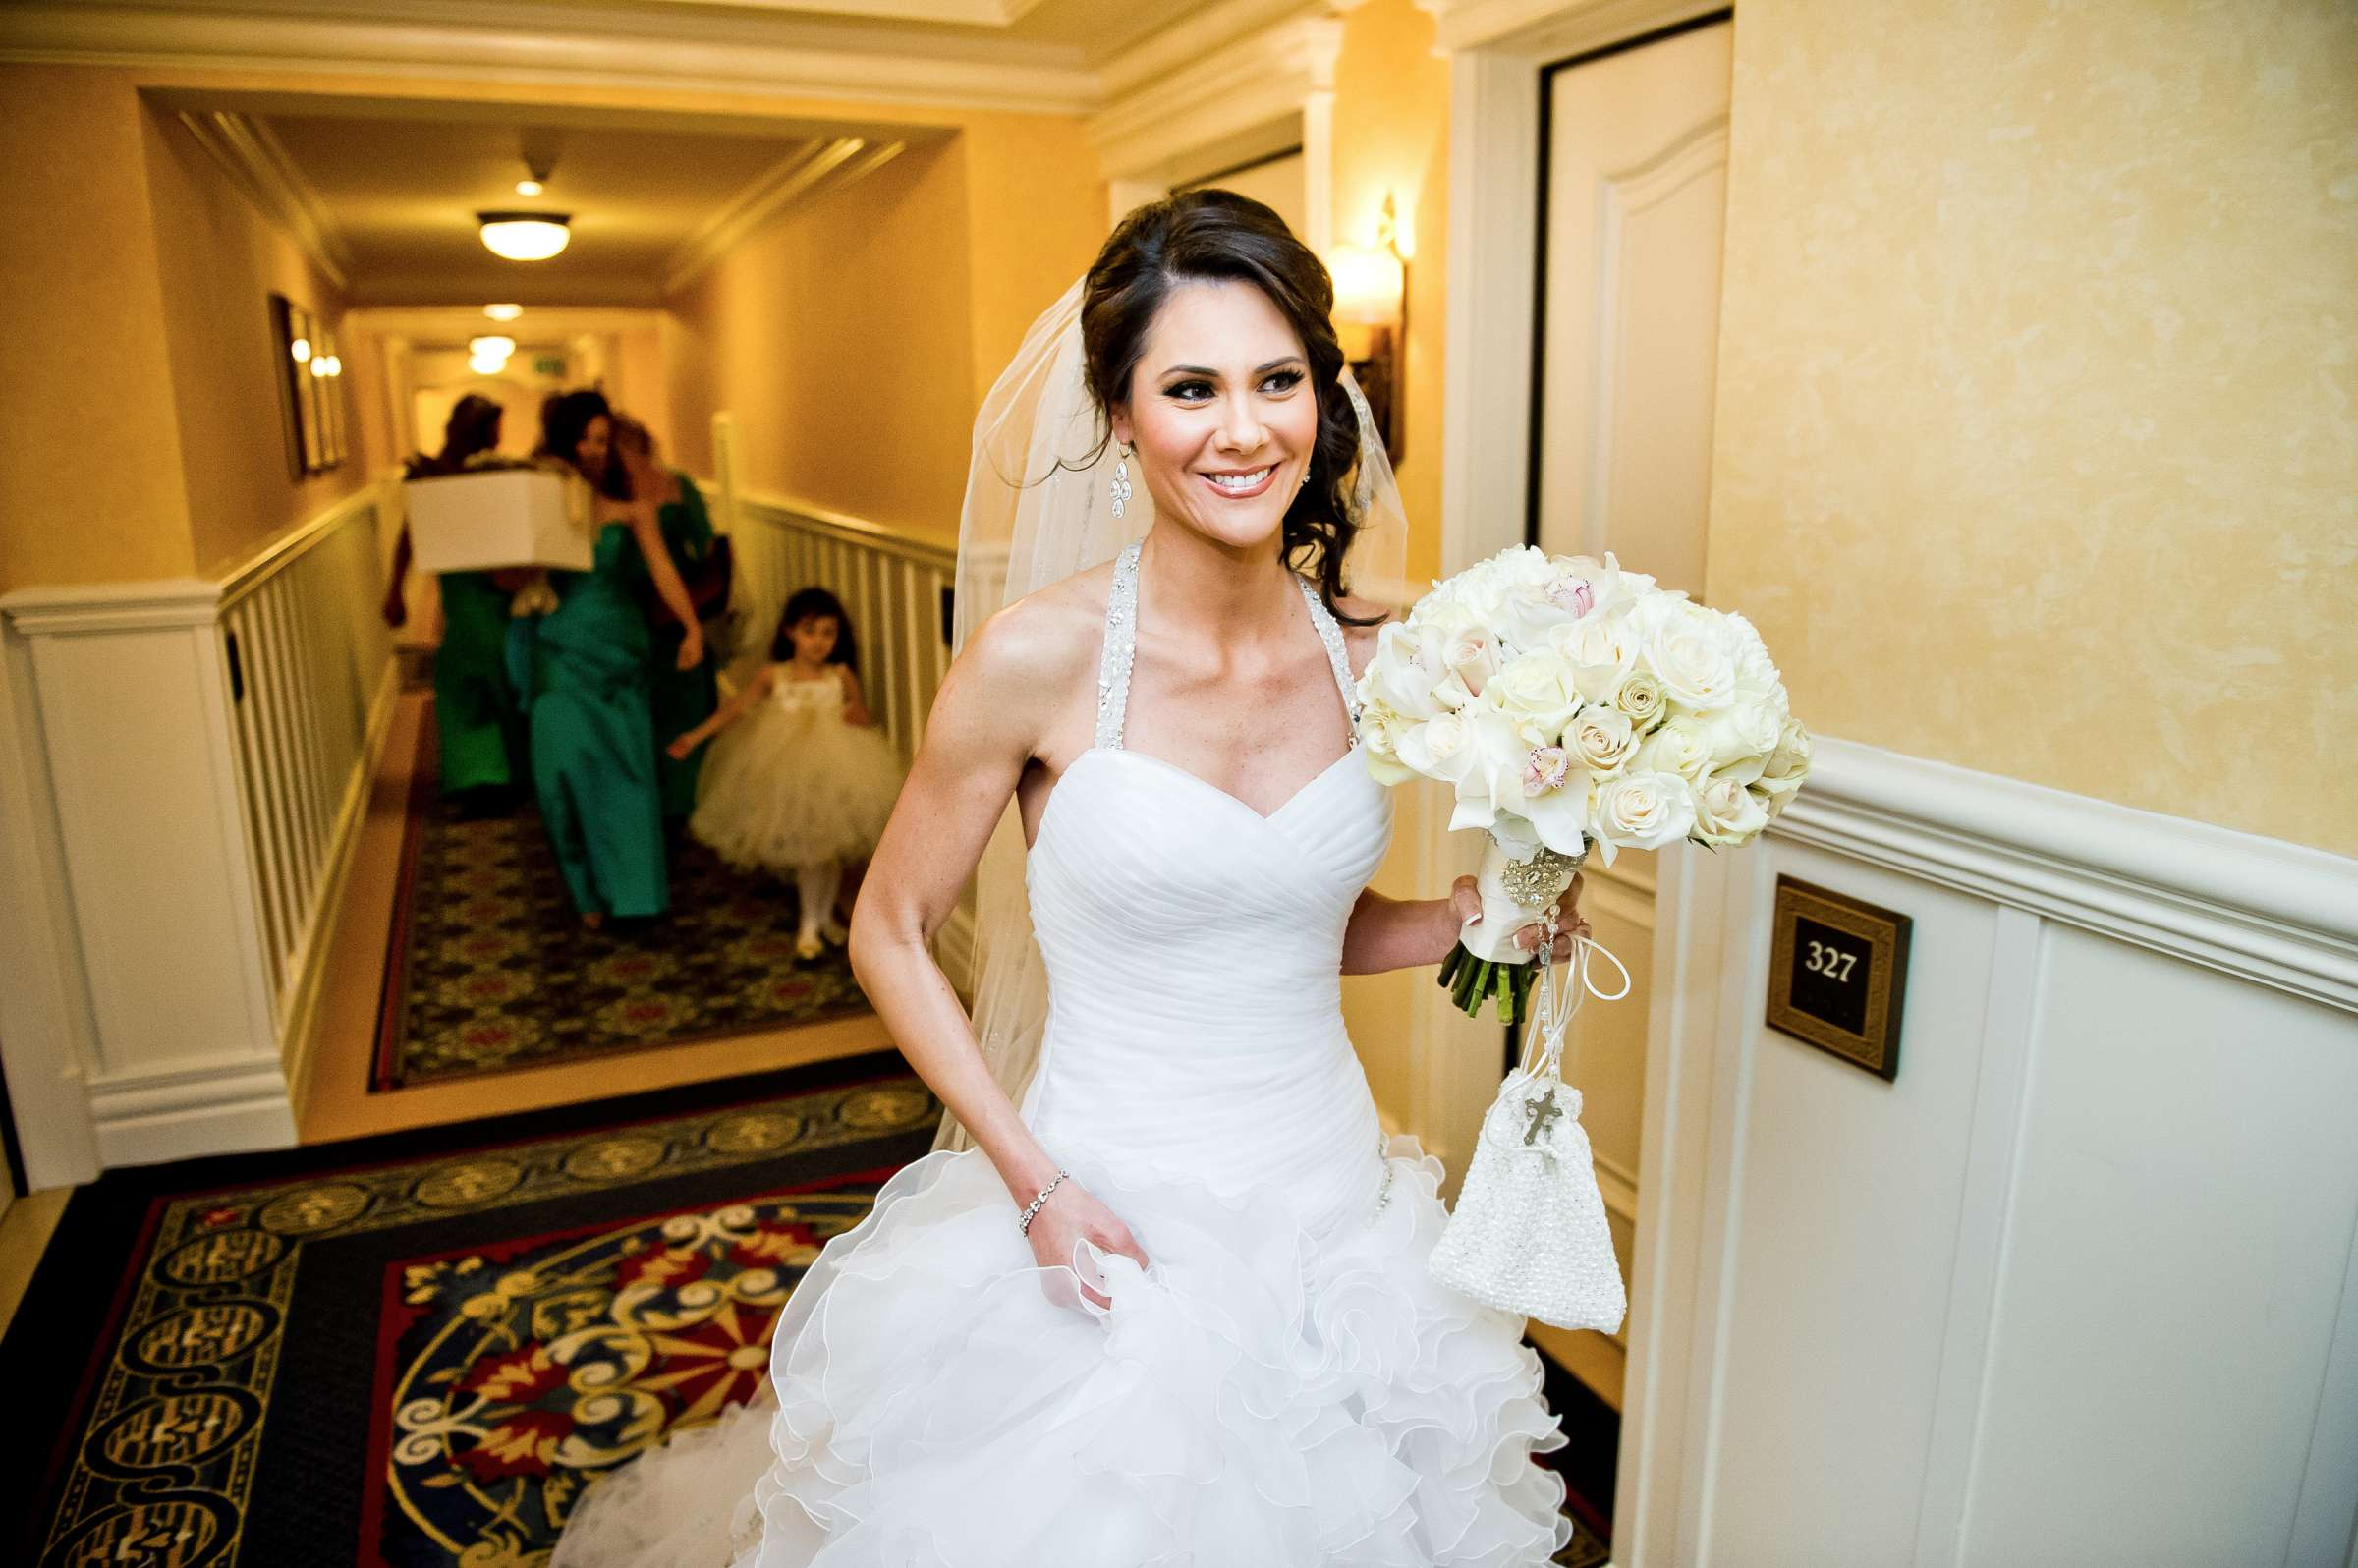 Fairmont Grand Del Mar Wedding, Angela and Tom Wedding Photo #20 by True Photography